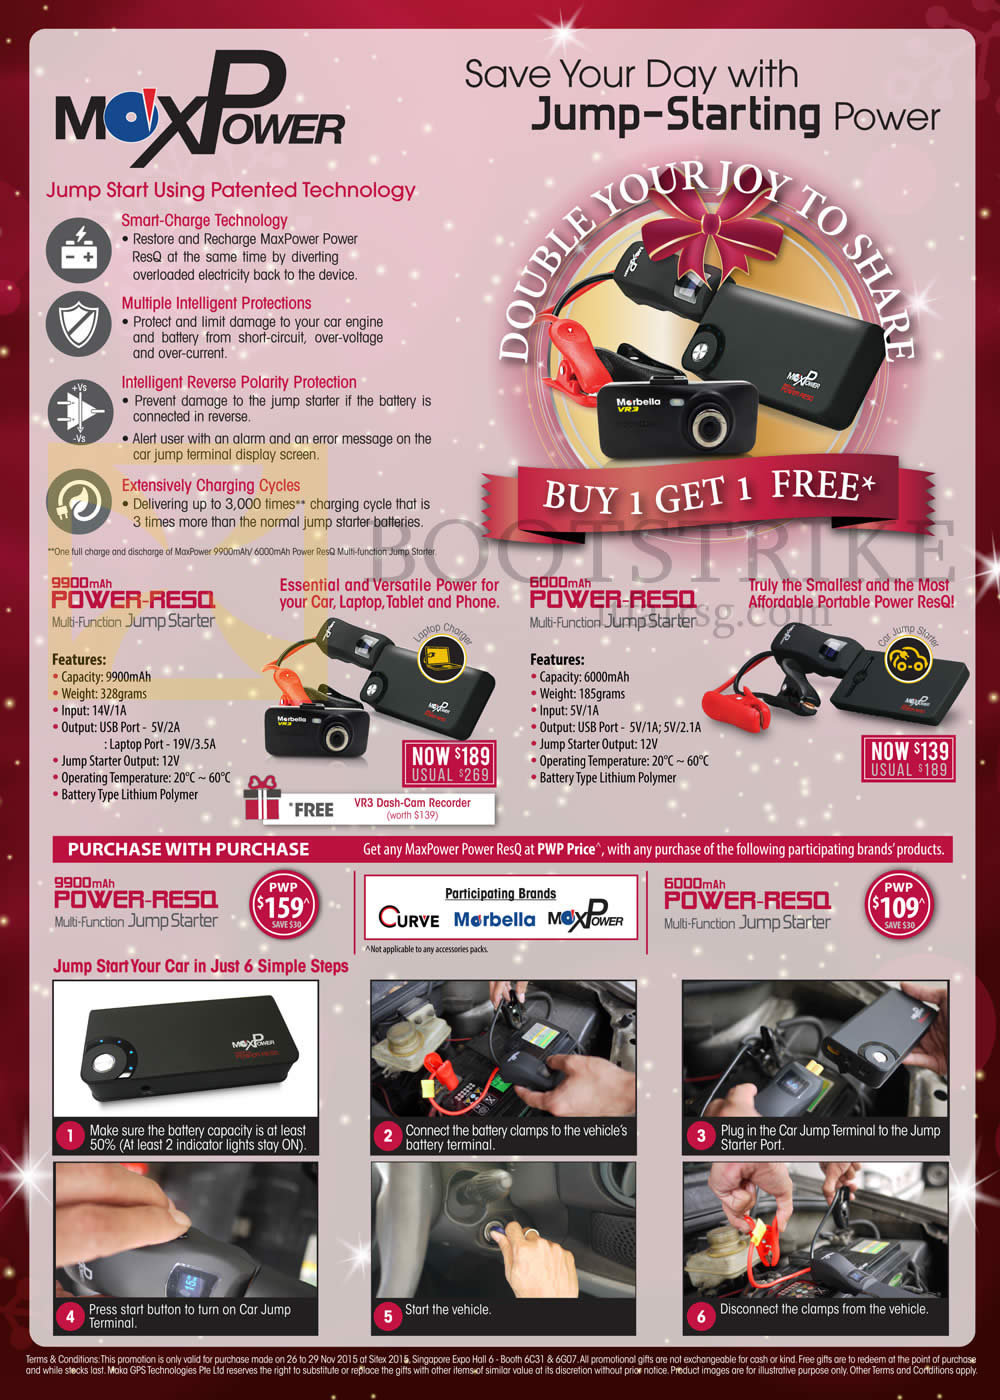 SITEX 2015 price list image brochure of Maka GPS Marbella MaxPower Power RESQ, Features